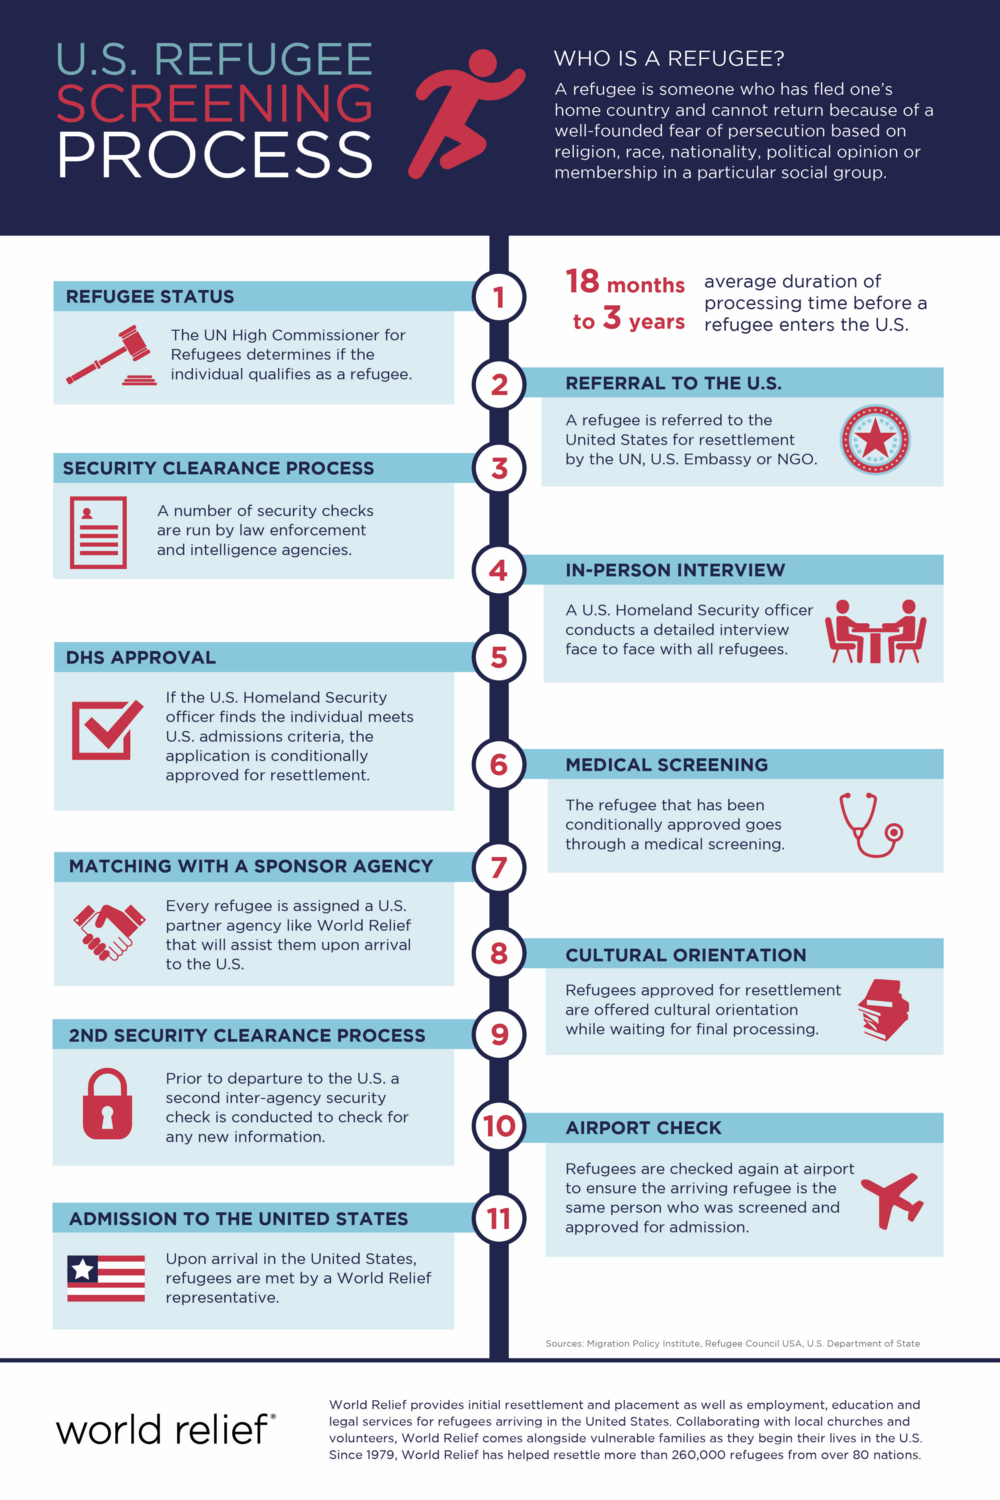 refugee screening process infographic united states